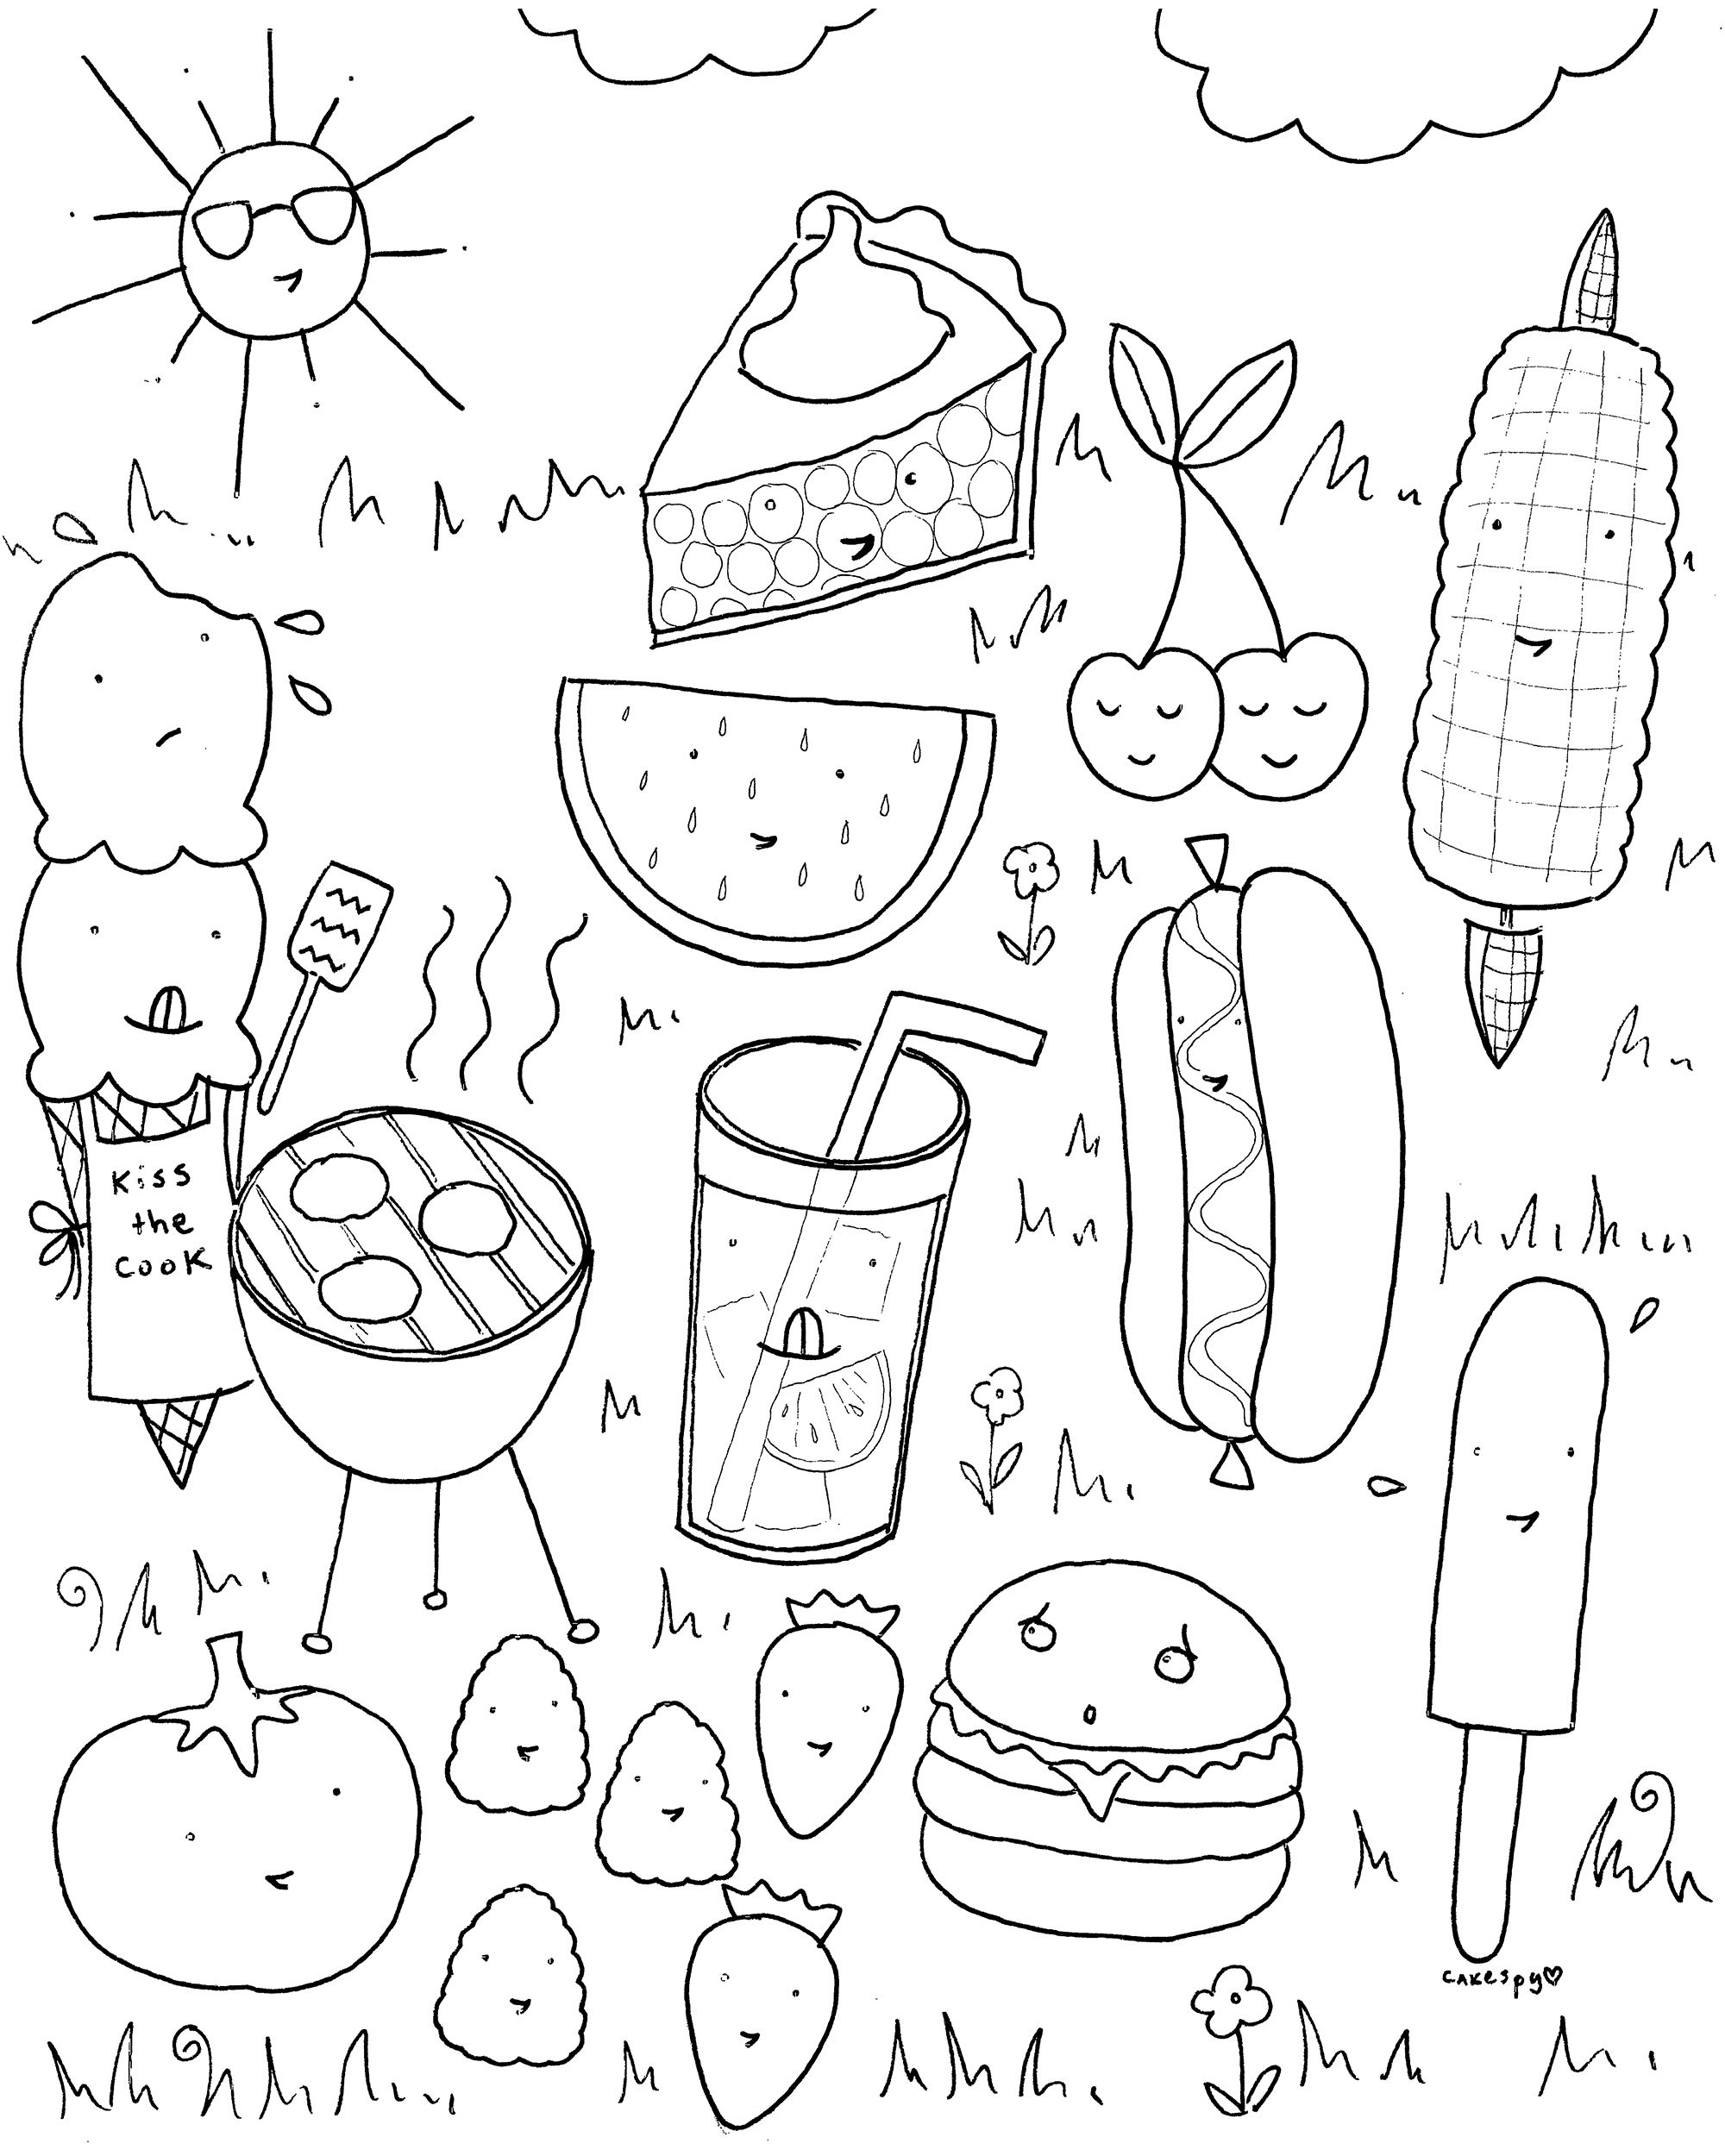 FREE Downloadable Summer Fun Coloring Book Pages in 2018 | раскраски ...